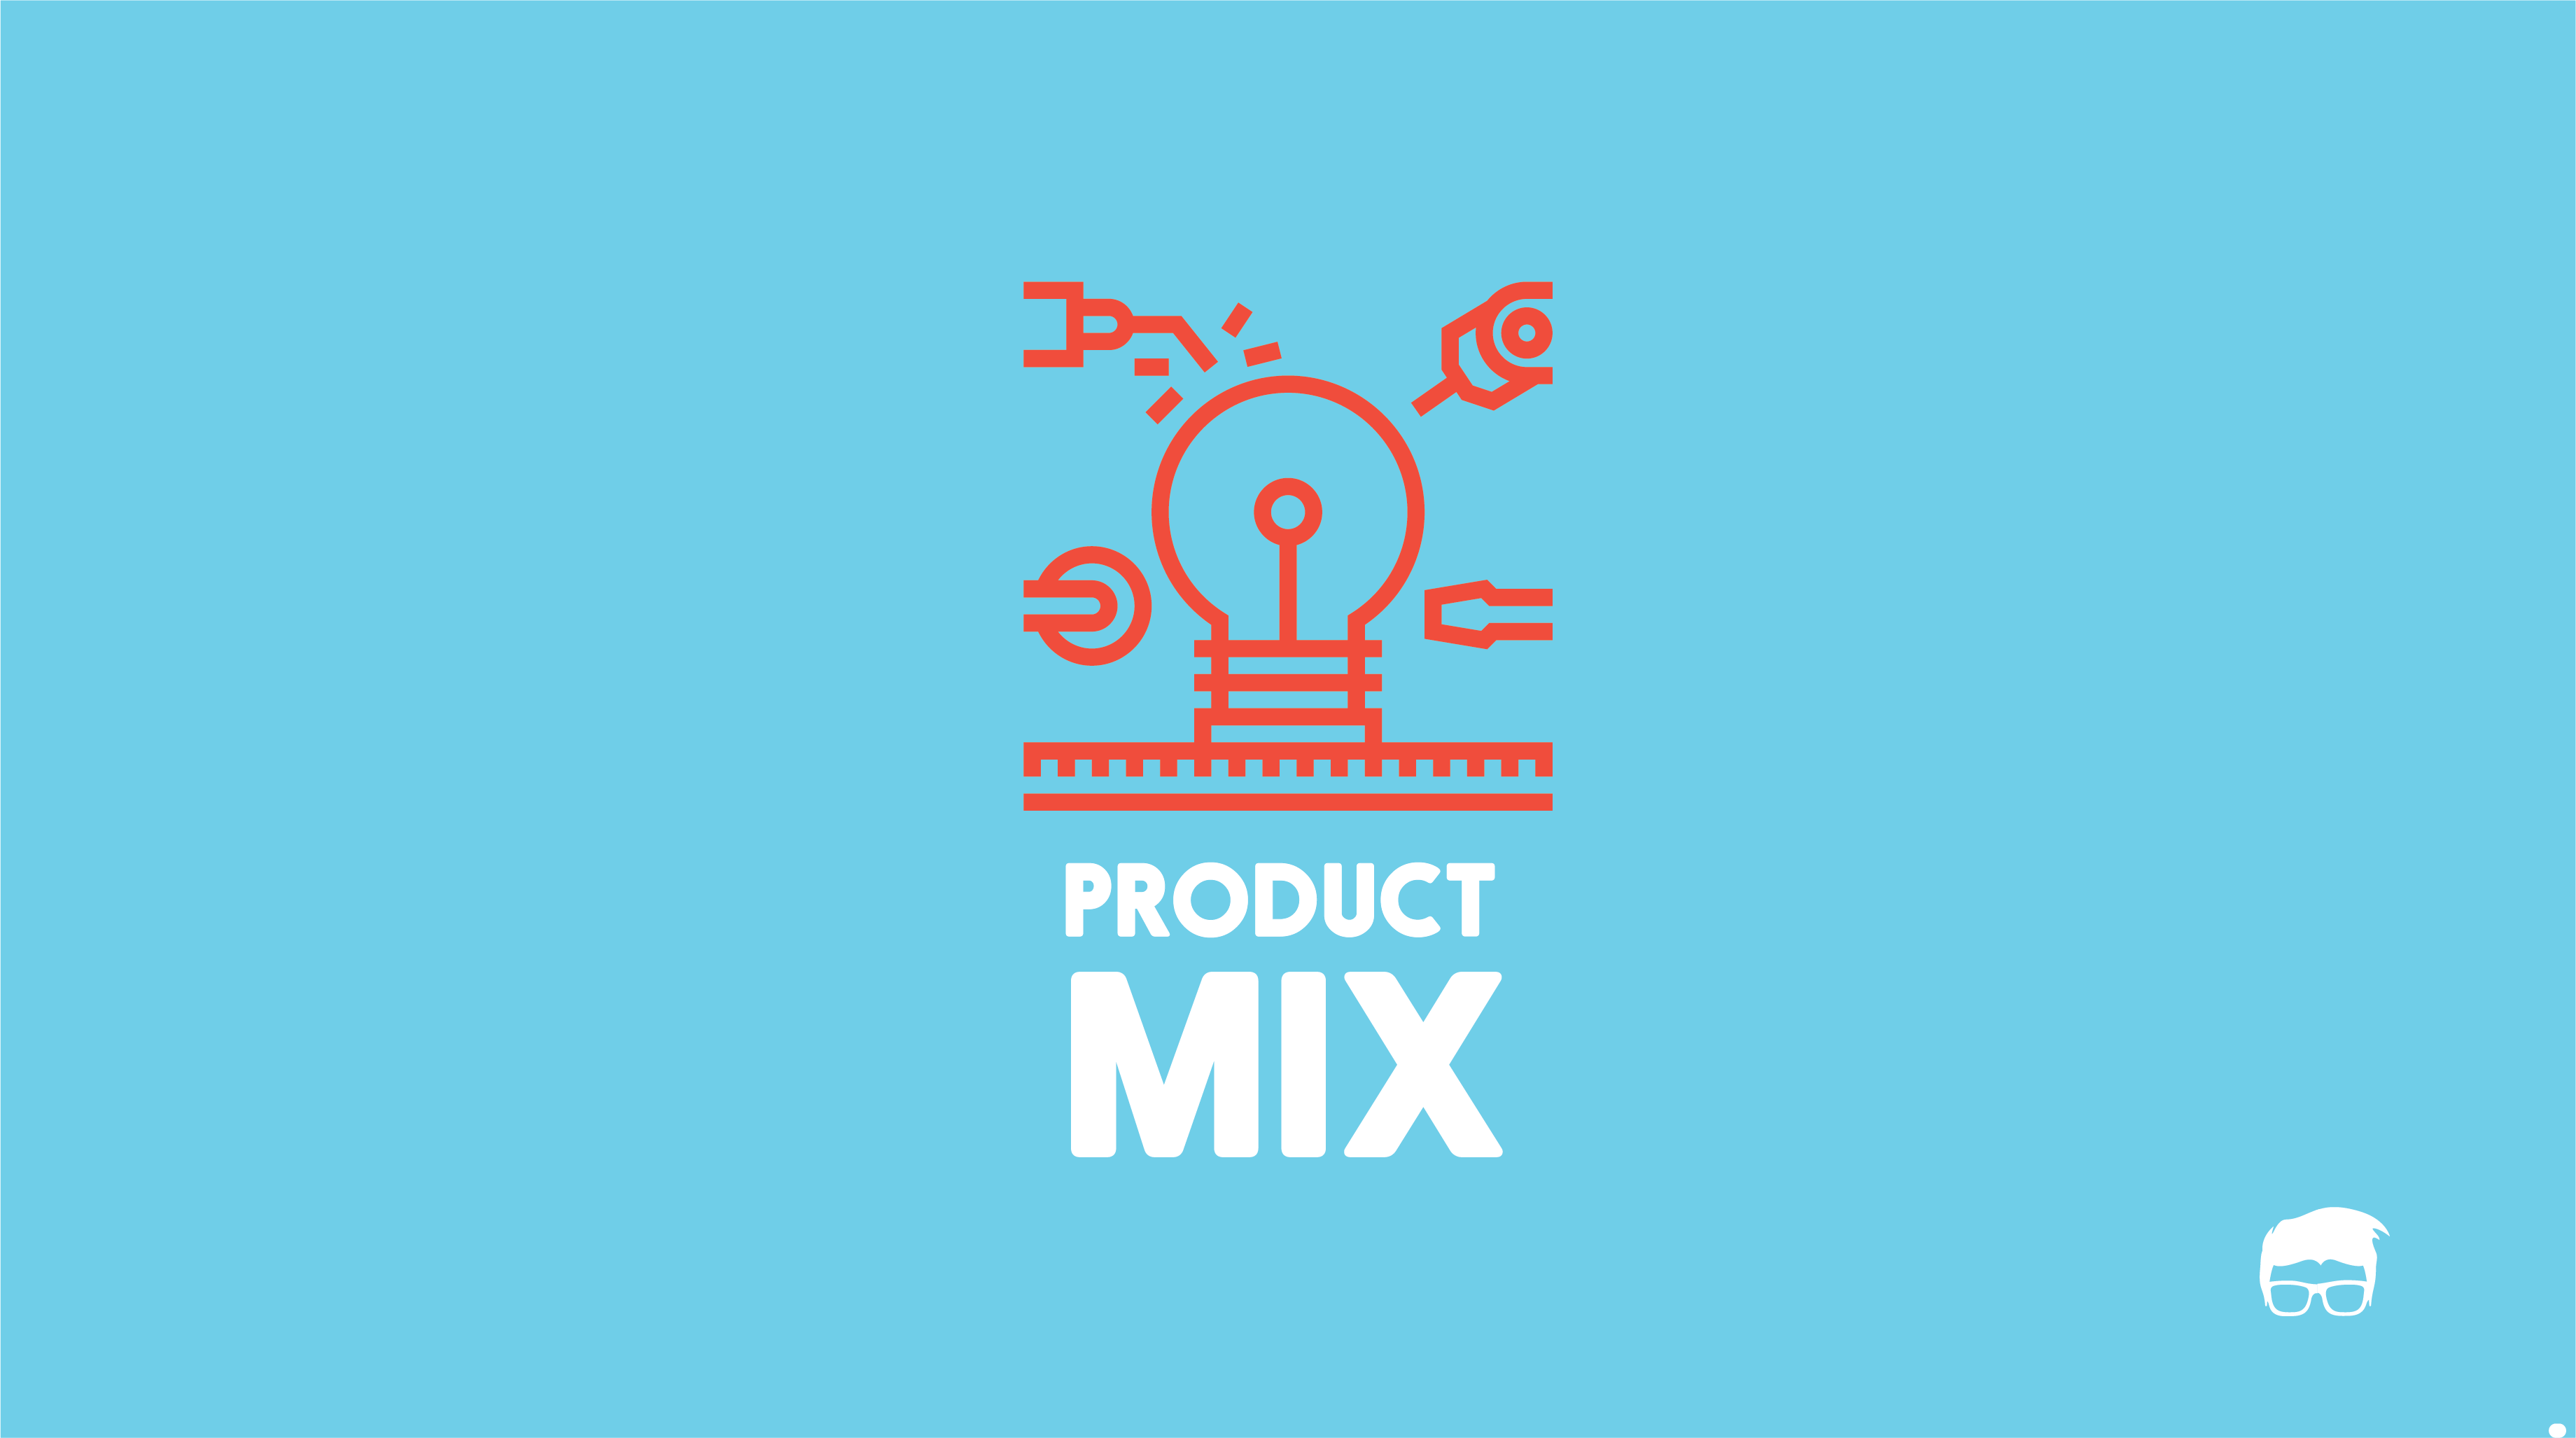 Mixture Concept Store Png - What Is Product Mix? Explanation With Examples   Feedough